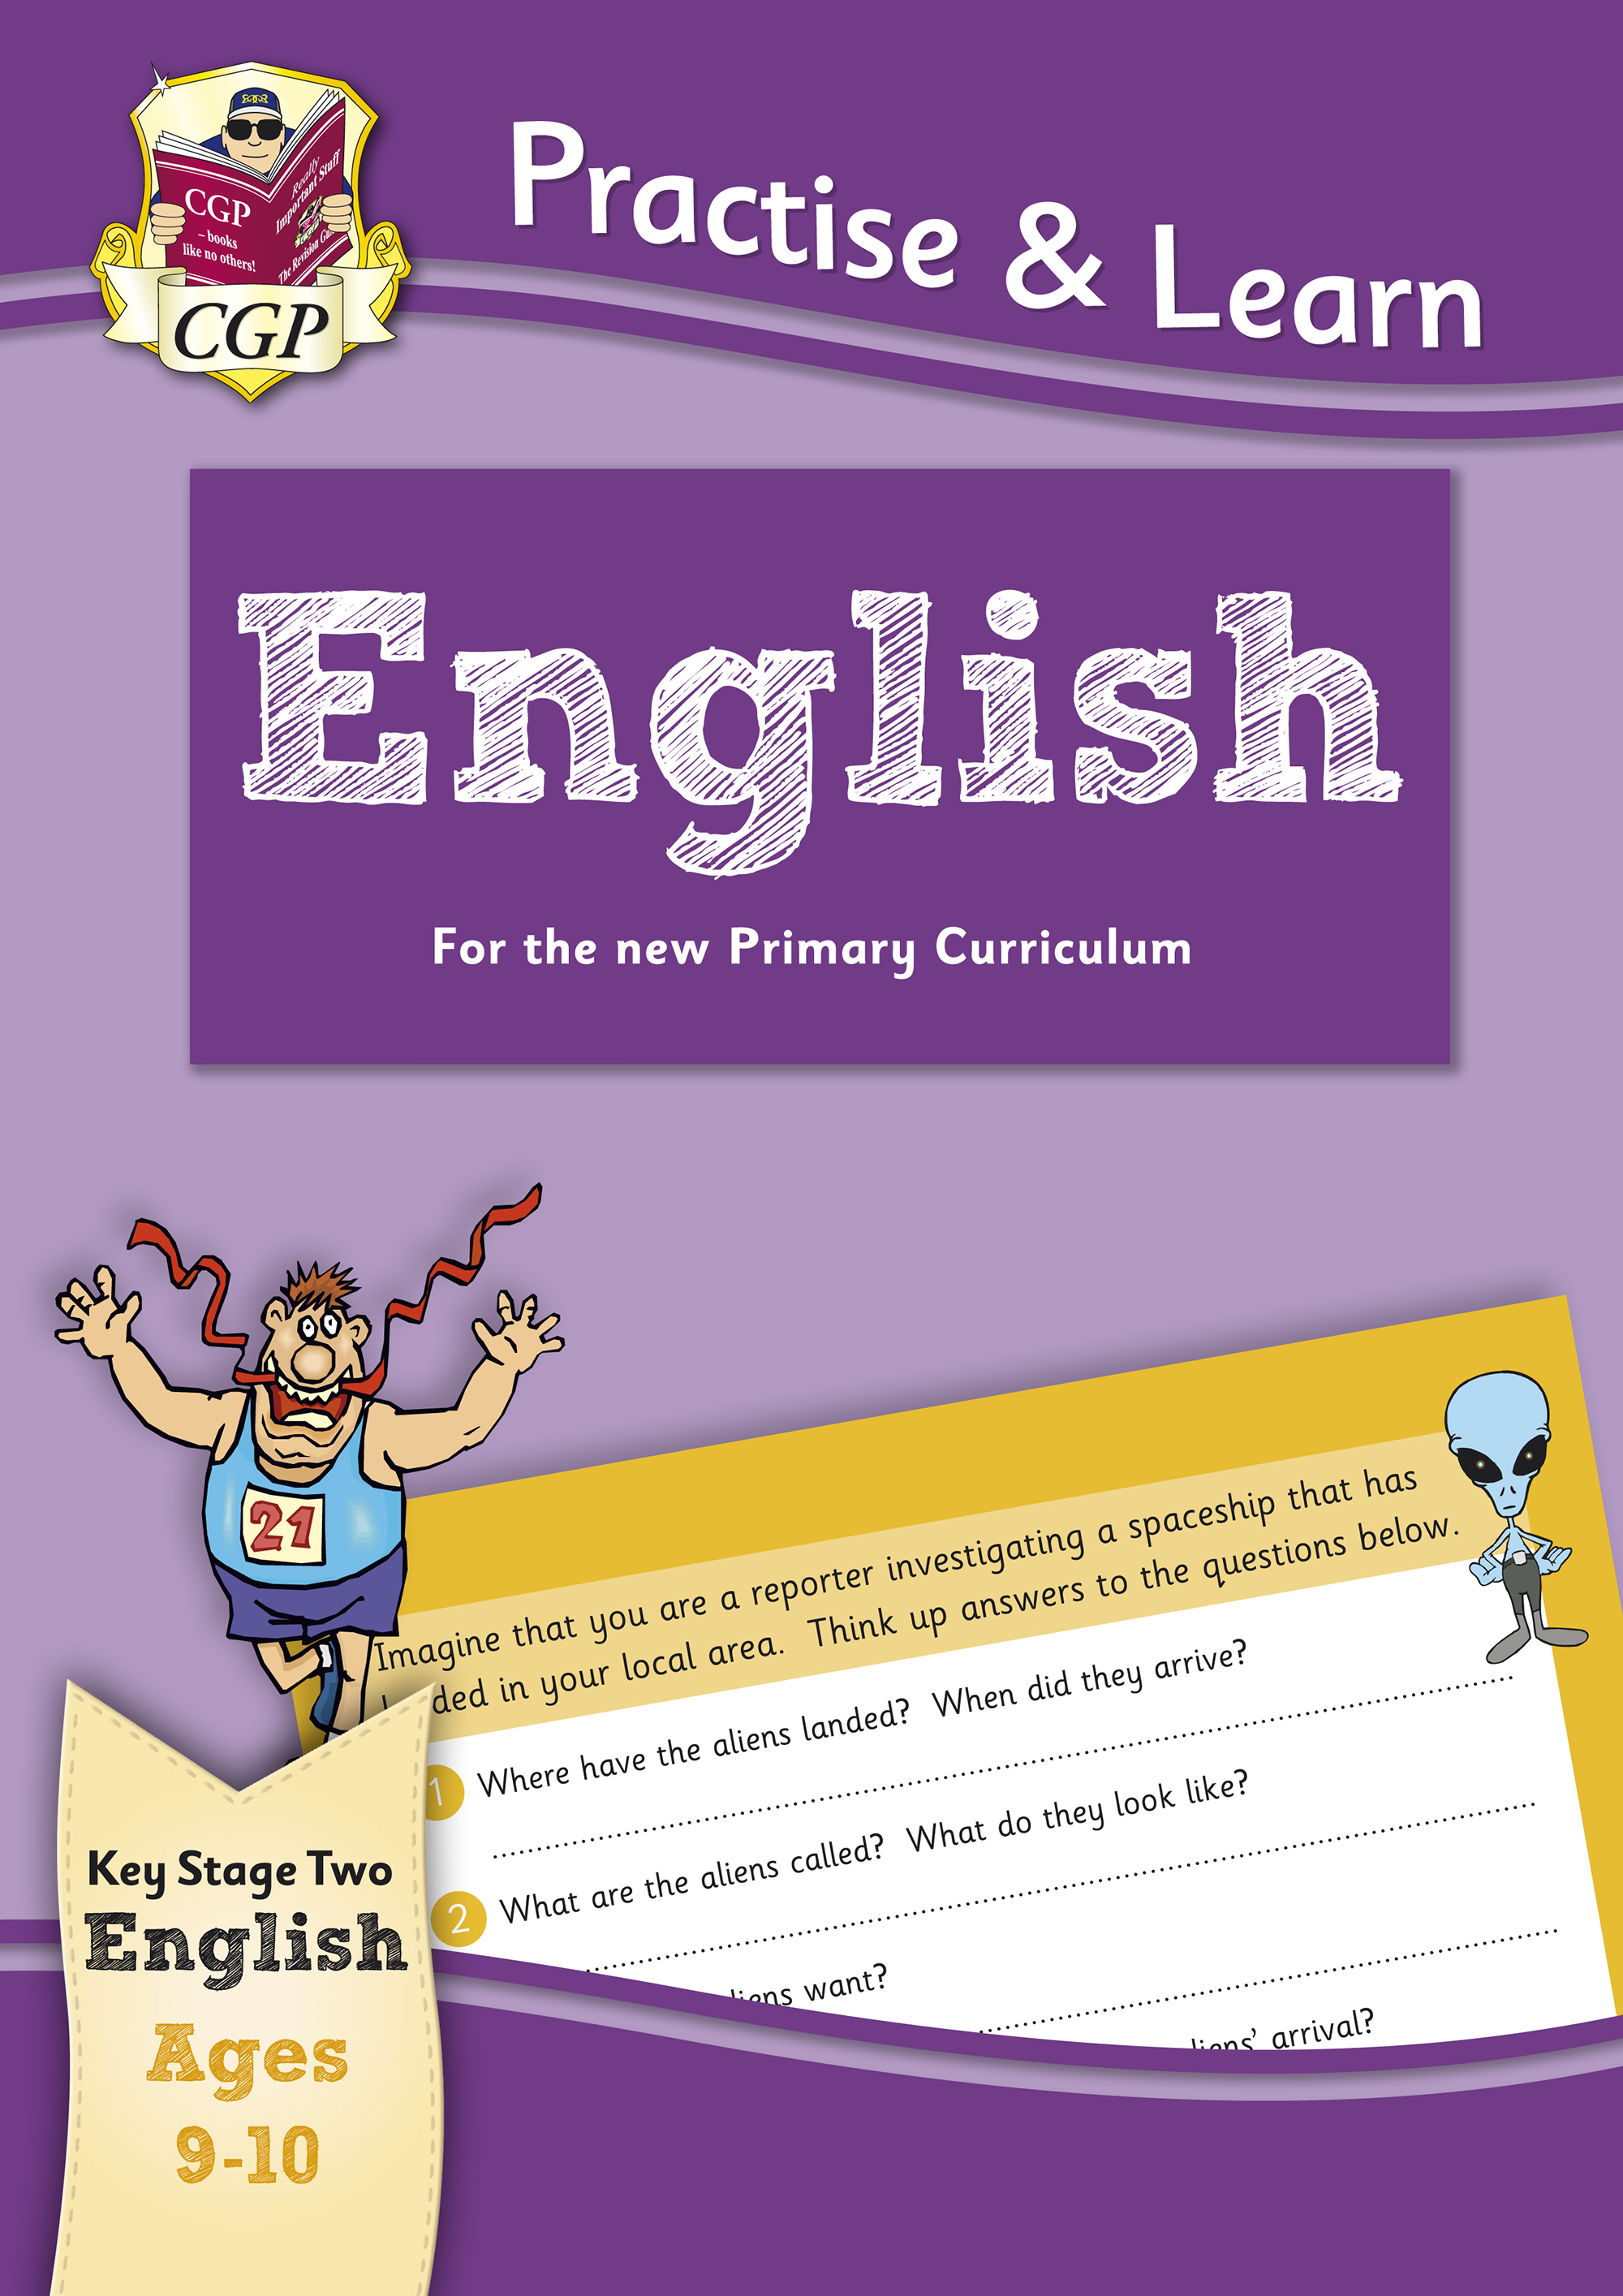 EP5Q22 - New Curriculum Practise & Learn: English for Ages 9-10